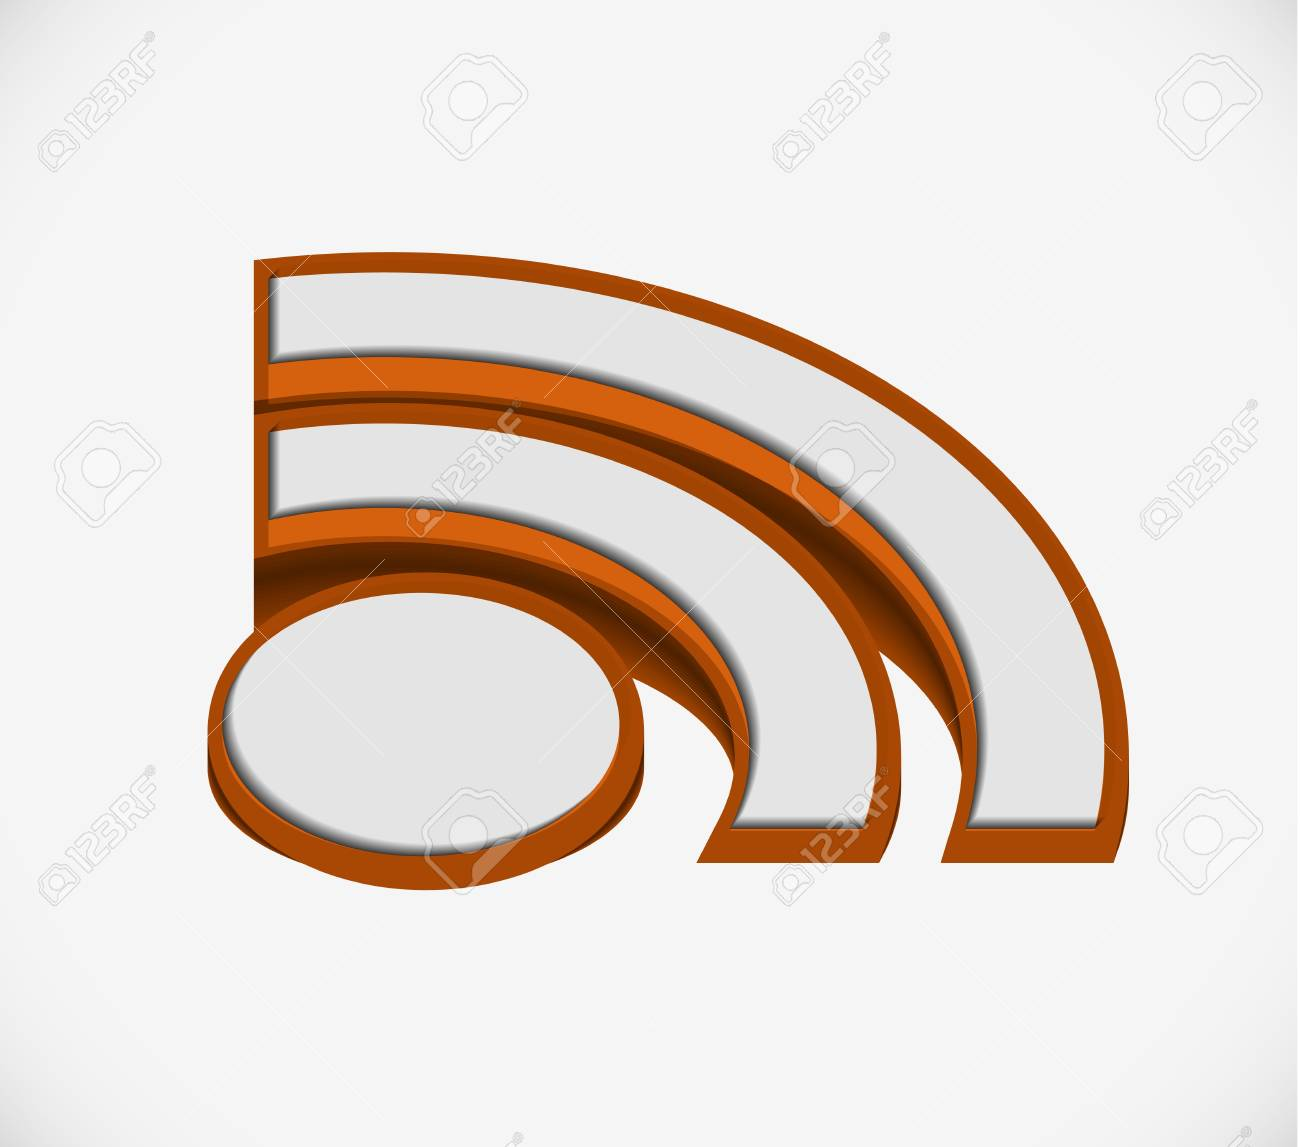 3d illustration of  rss icon over white background Stock Vector - 9543084